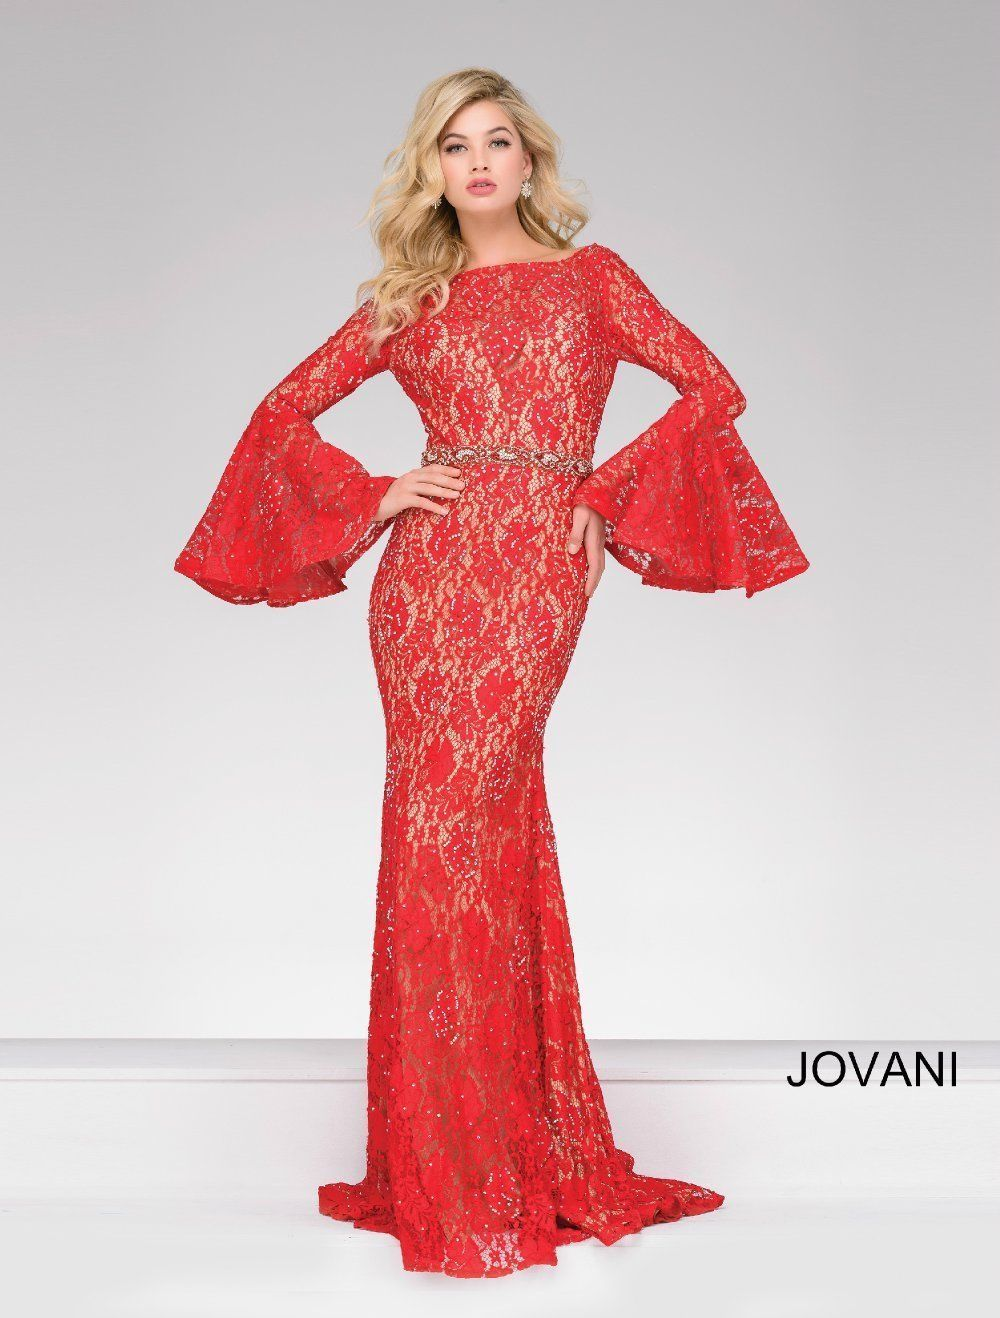 Cool awesome jovani dress gown prom price guaranteelayaway